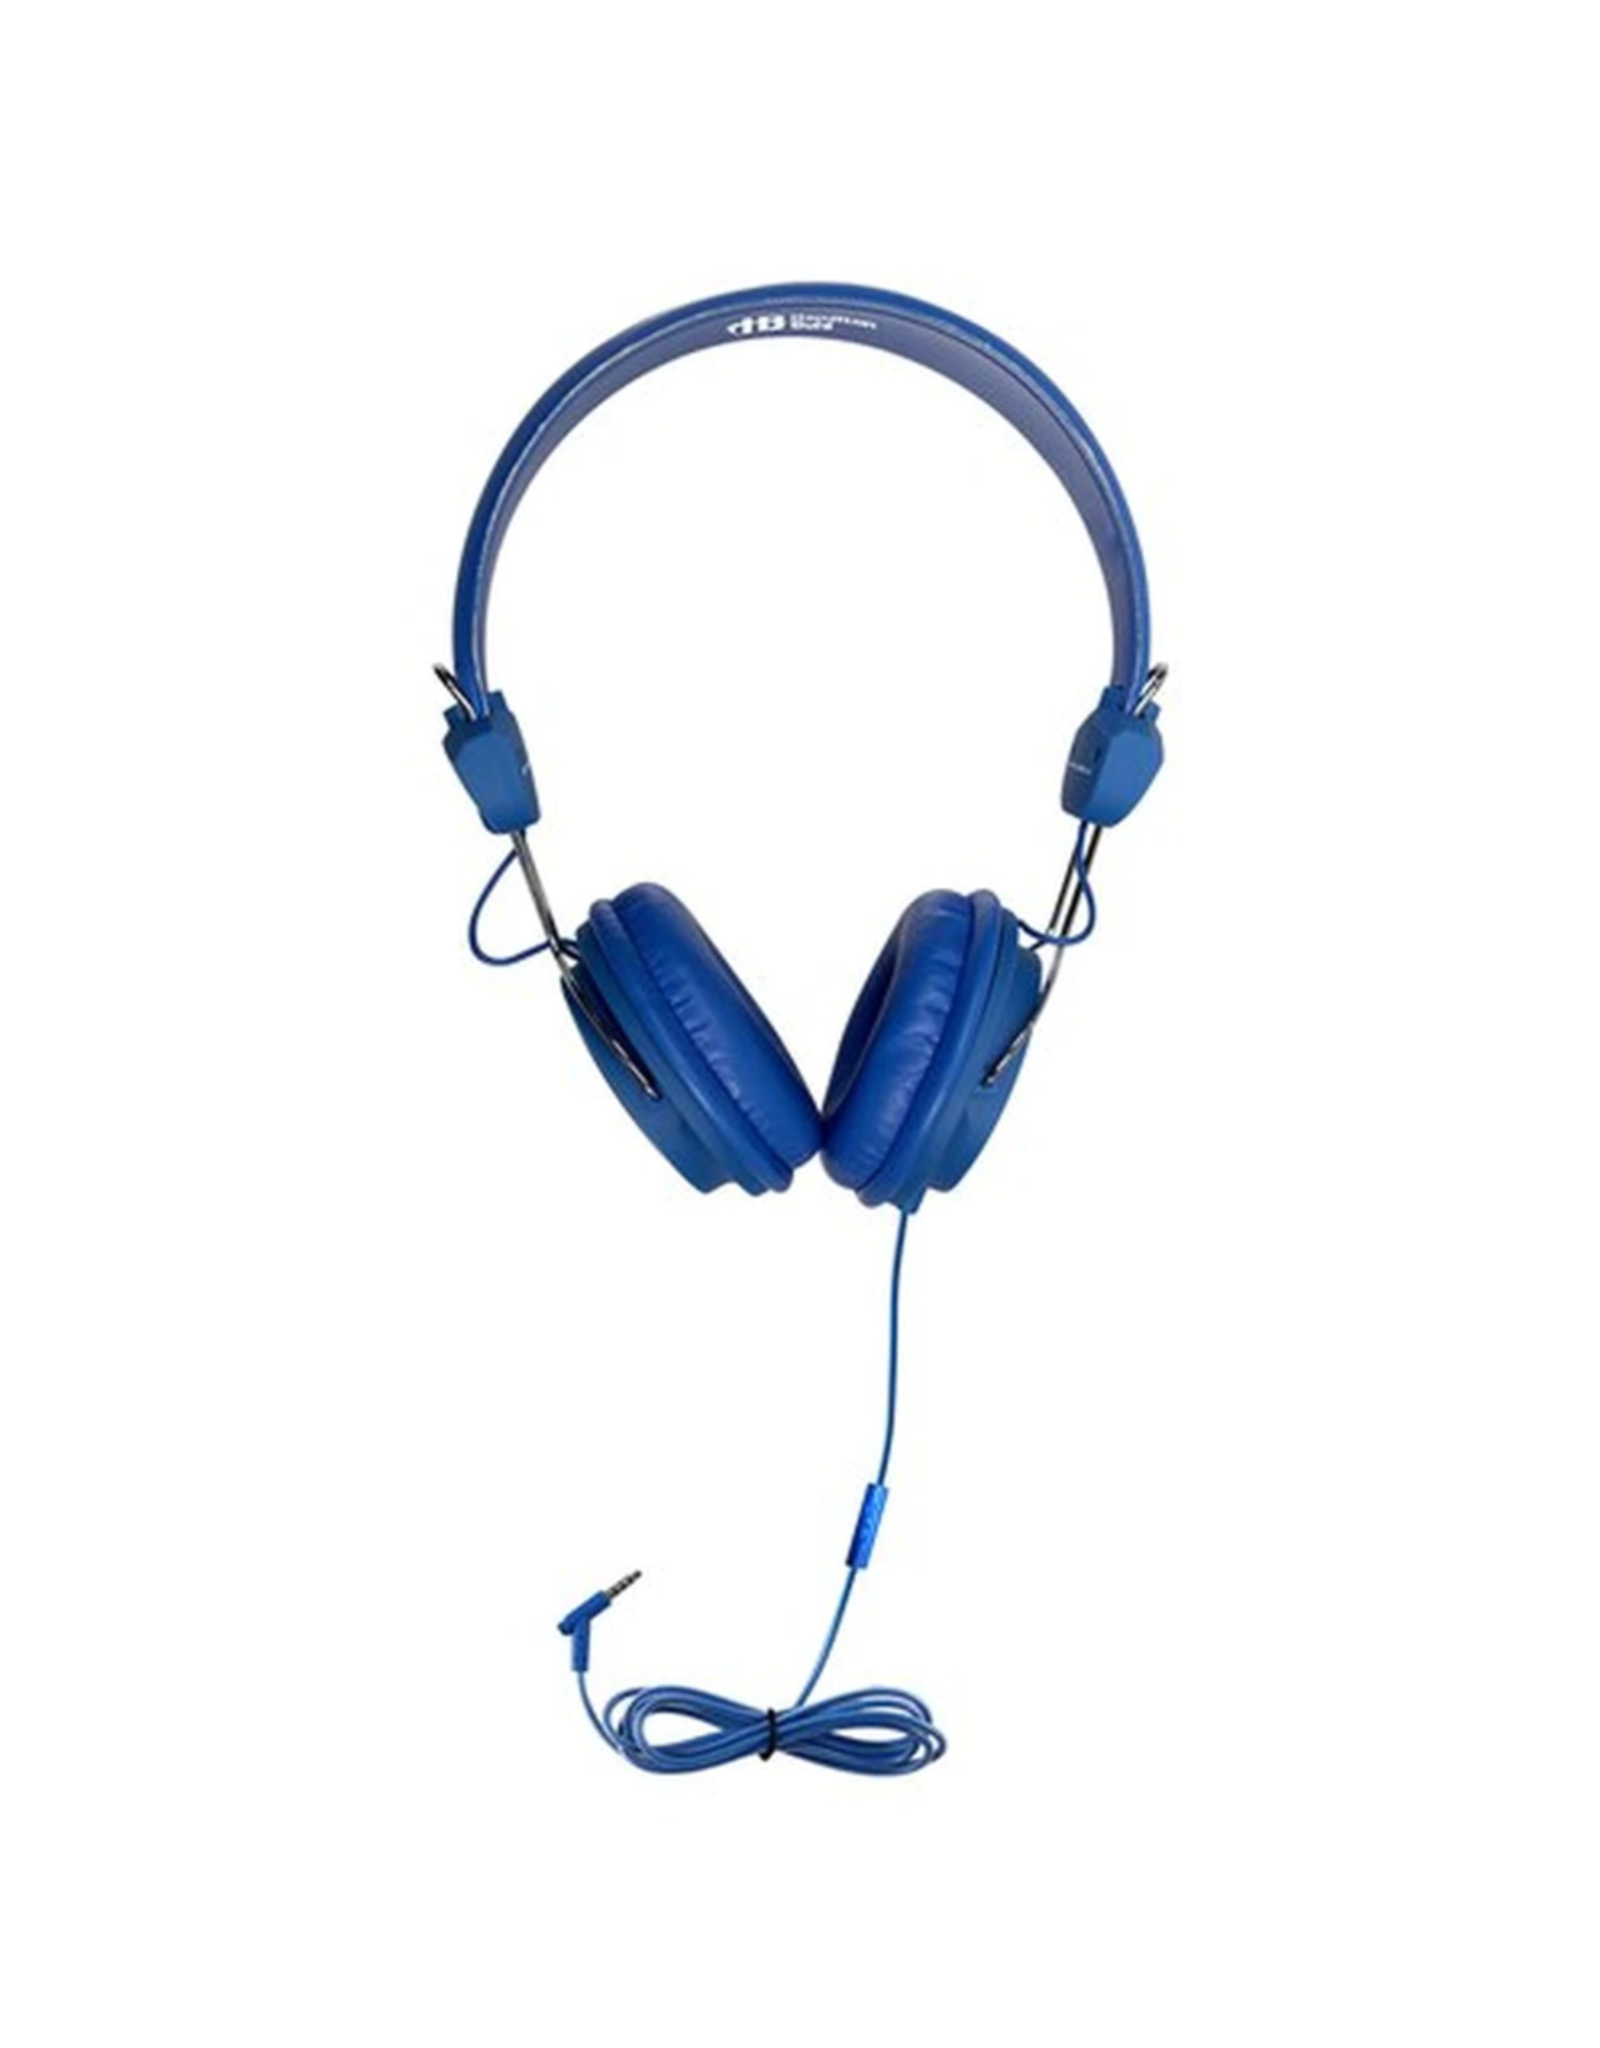 HamiltonBuhl HamiltonBuhl Headset On Ear with In-line Mic TRRS Blue SKU:49374